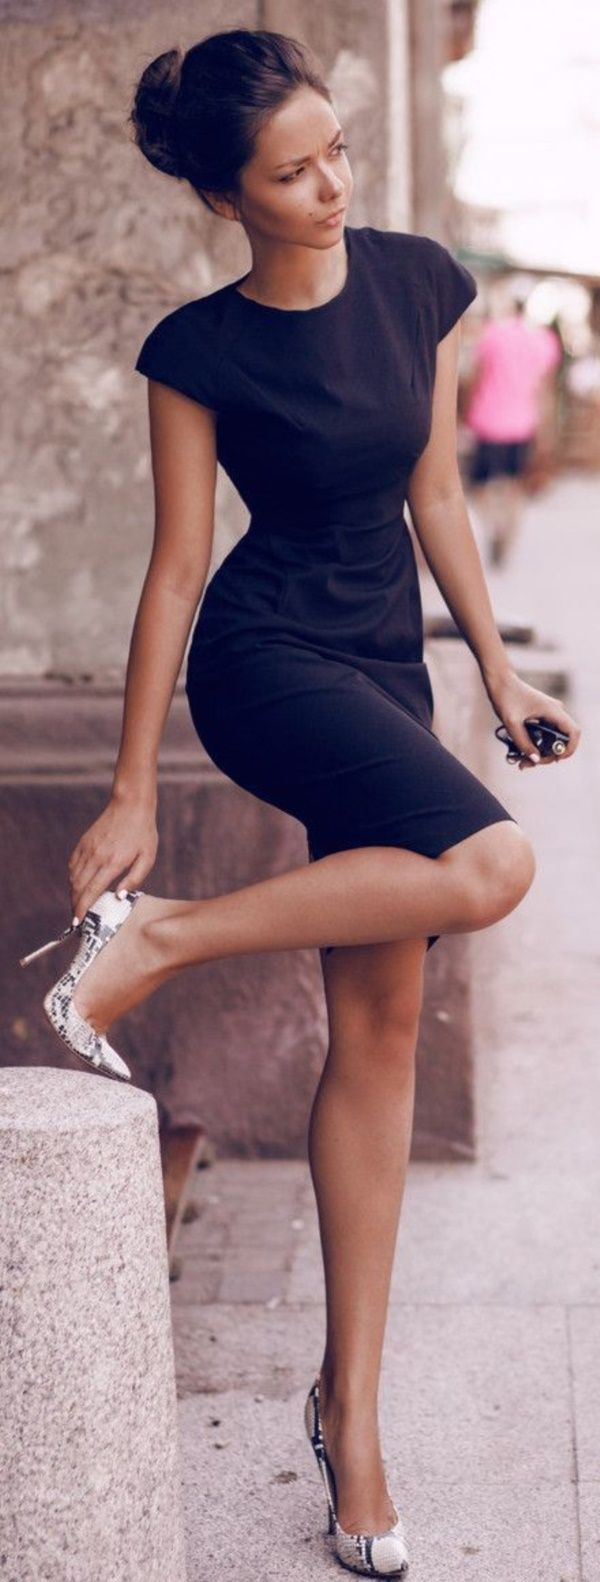 Black dress heels - Informally Sensational Party Dresses You Should Have Tried By Now0371